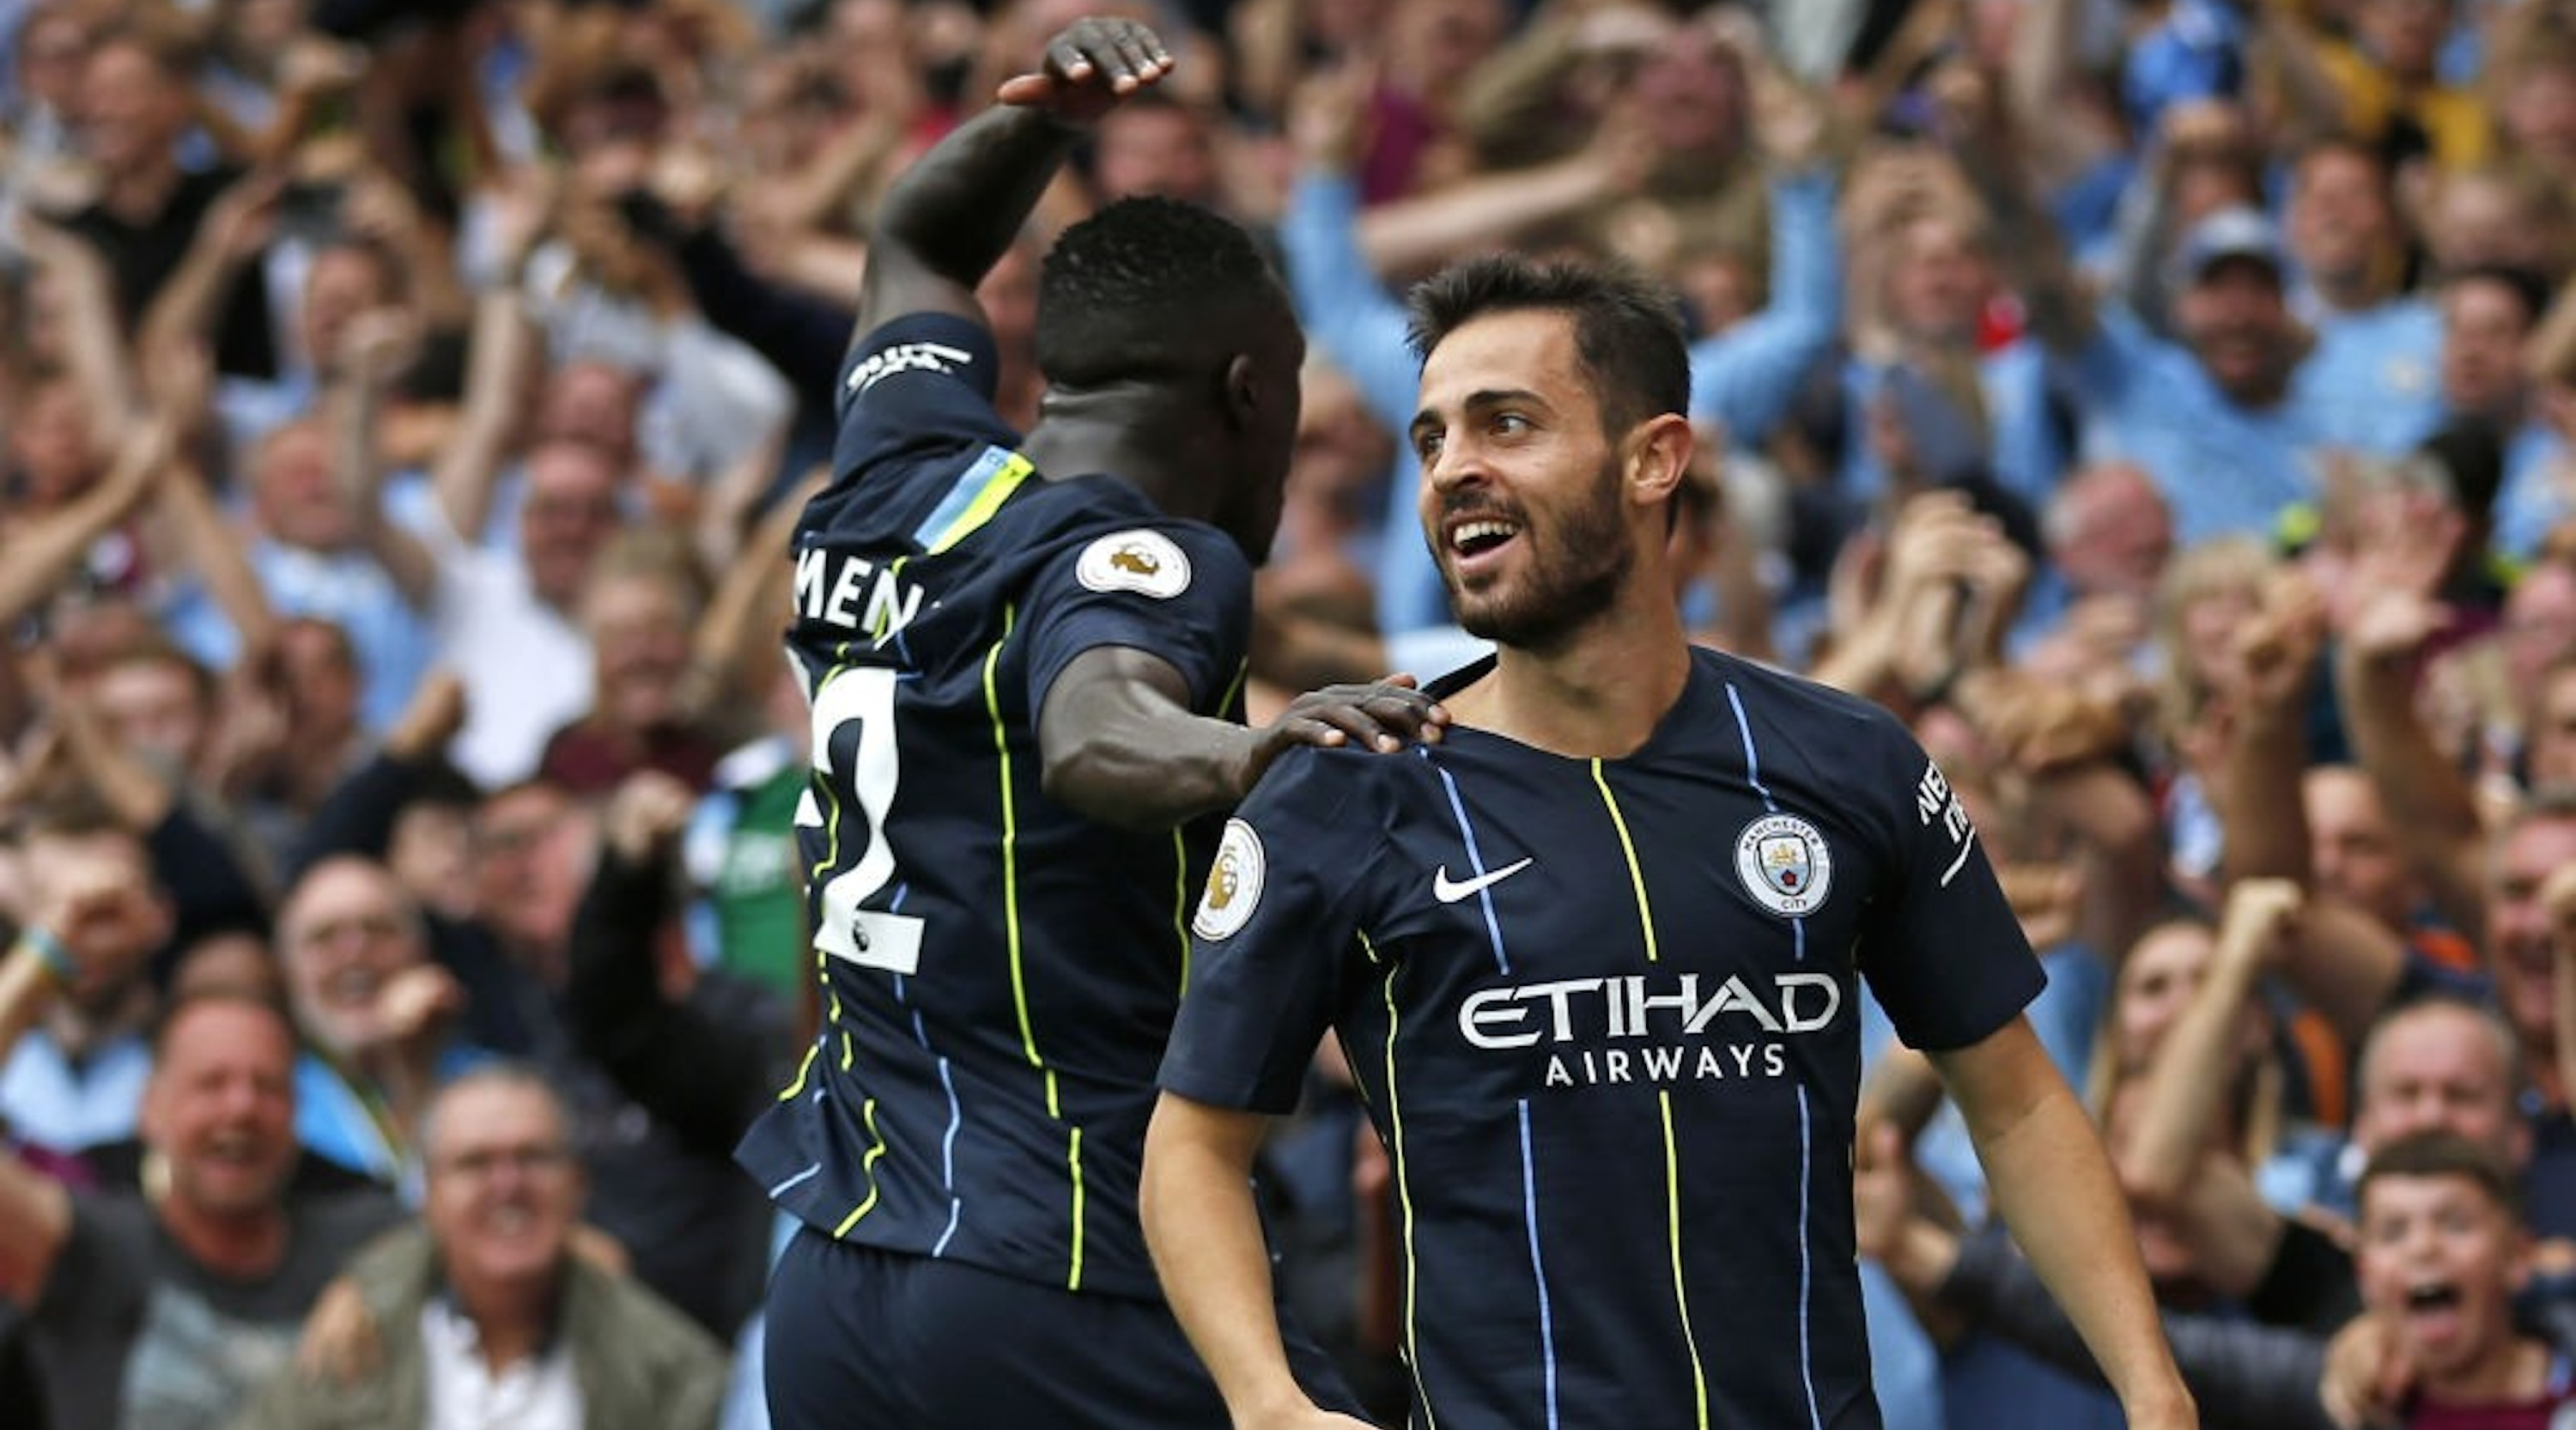 Manchester City's Portuguese midfielder Bernardo Silva (R) celebrates with Manchester City's French defender Benjamin Mendy after scoring their second goal during the English Premier League football match between Arsenal and Manchester City at the Emirates Stadium in London on August 12, 2018. (Photo by Ian KINGTON / IKIMAGES / AFP) /